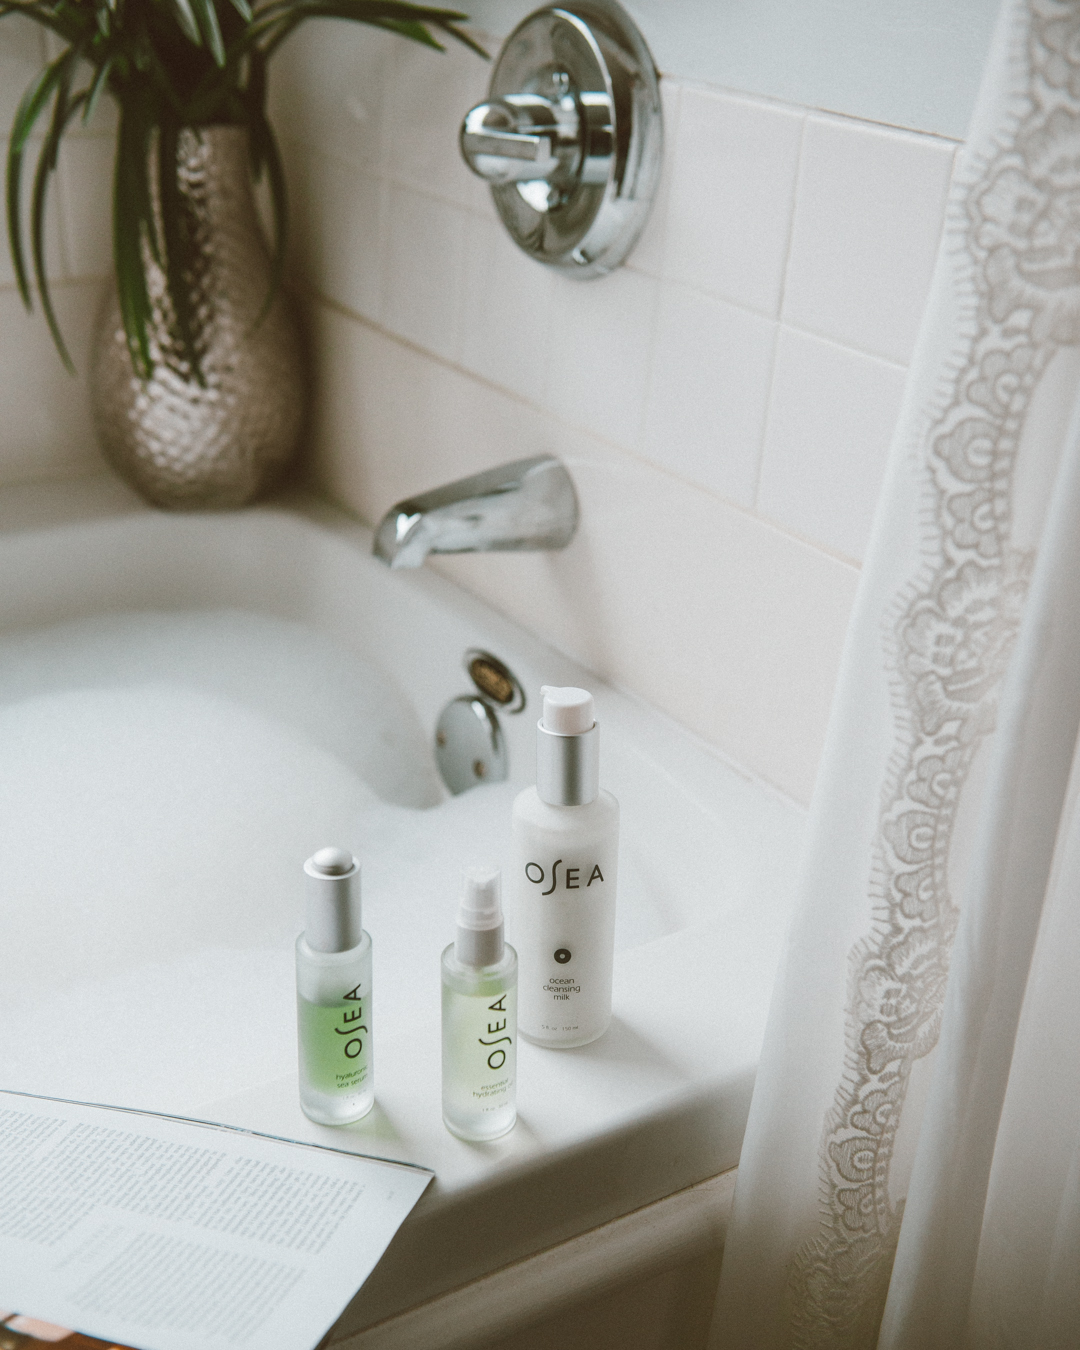 At Home Spa Day with Osea Skincare | THE M.A. TIMES